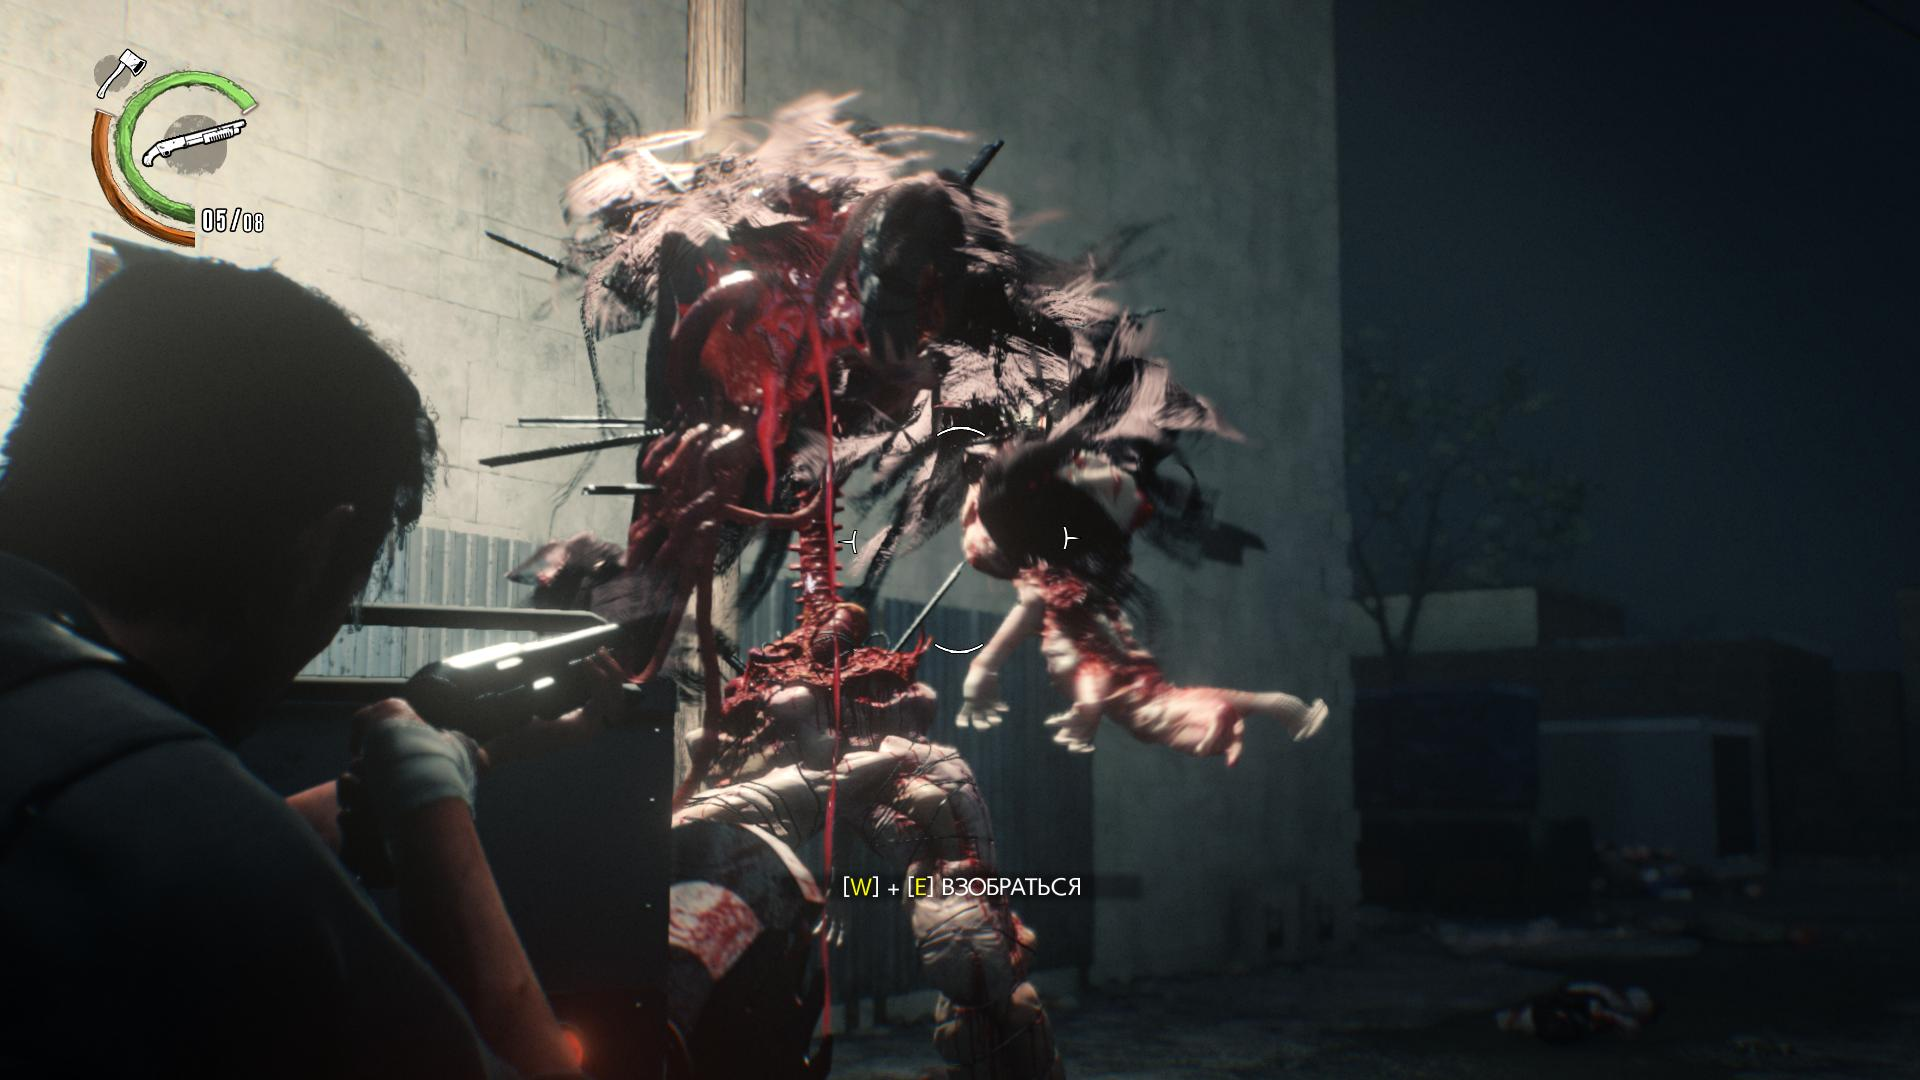 000114.Jpg - Evil Within 2, the